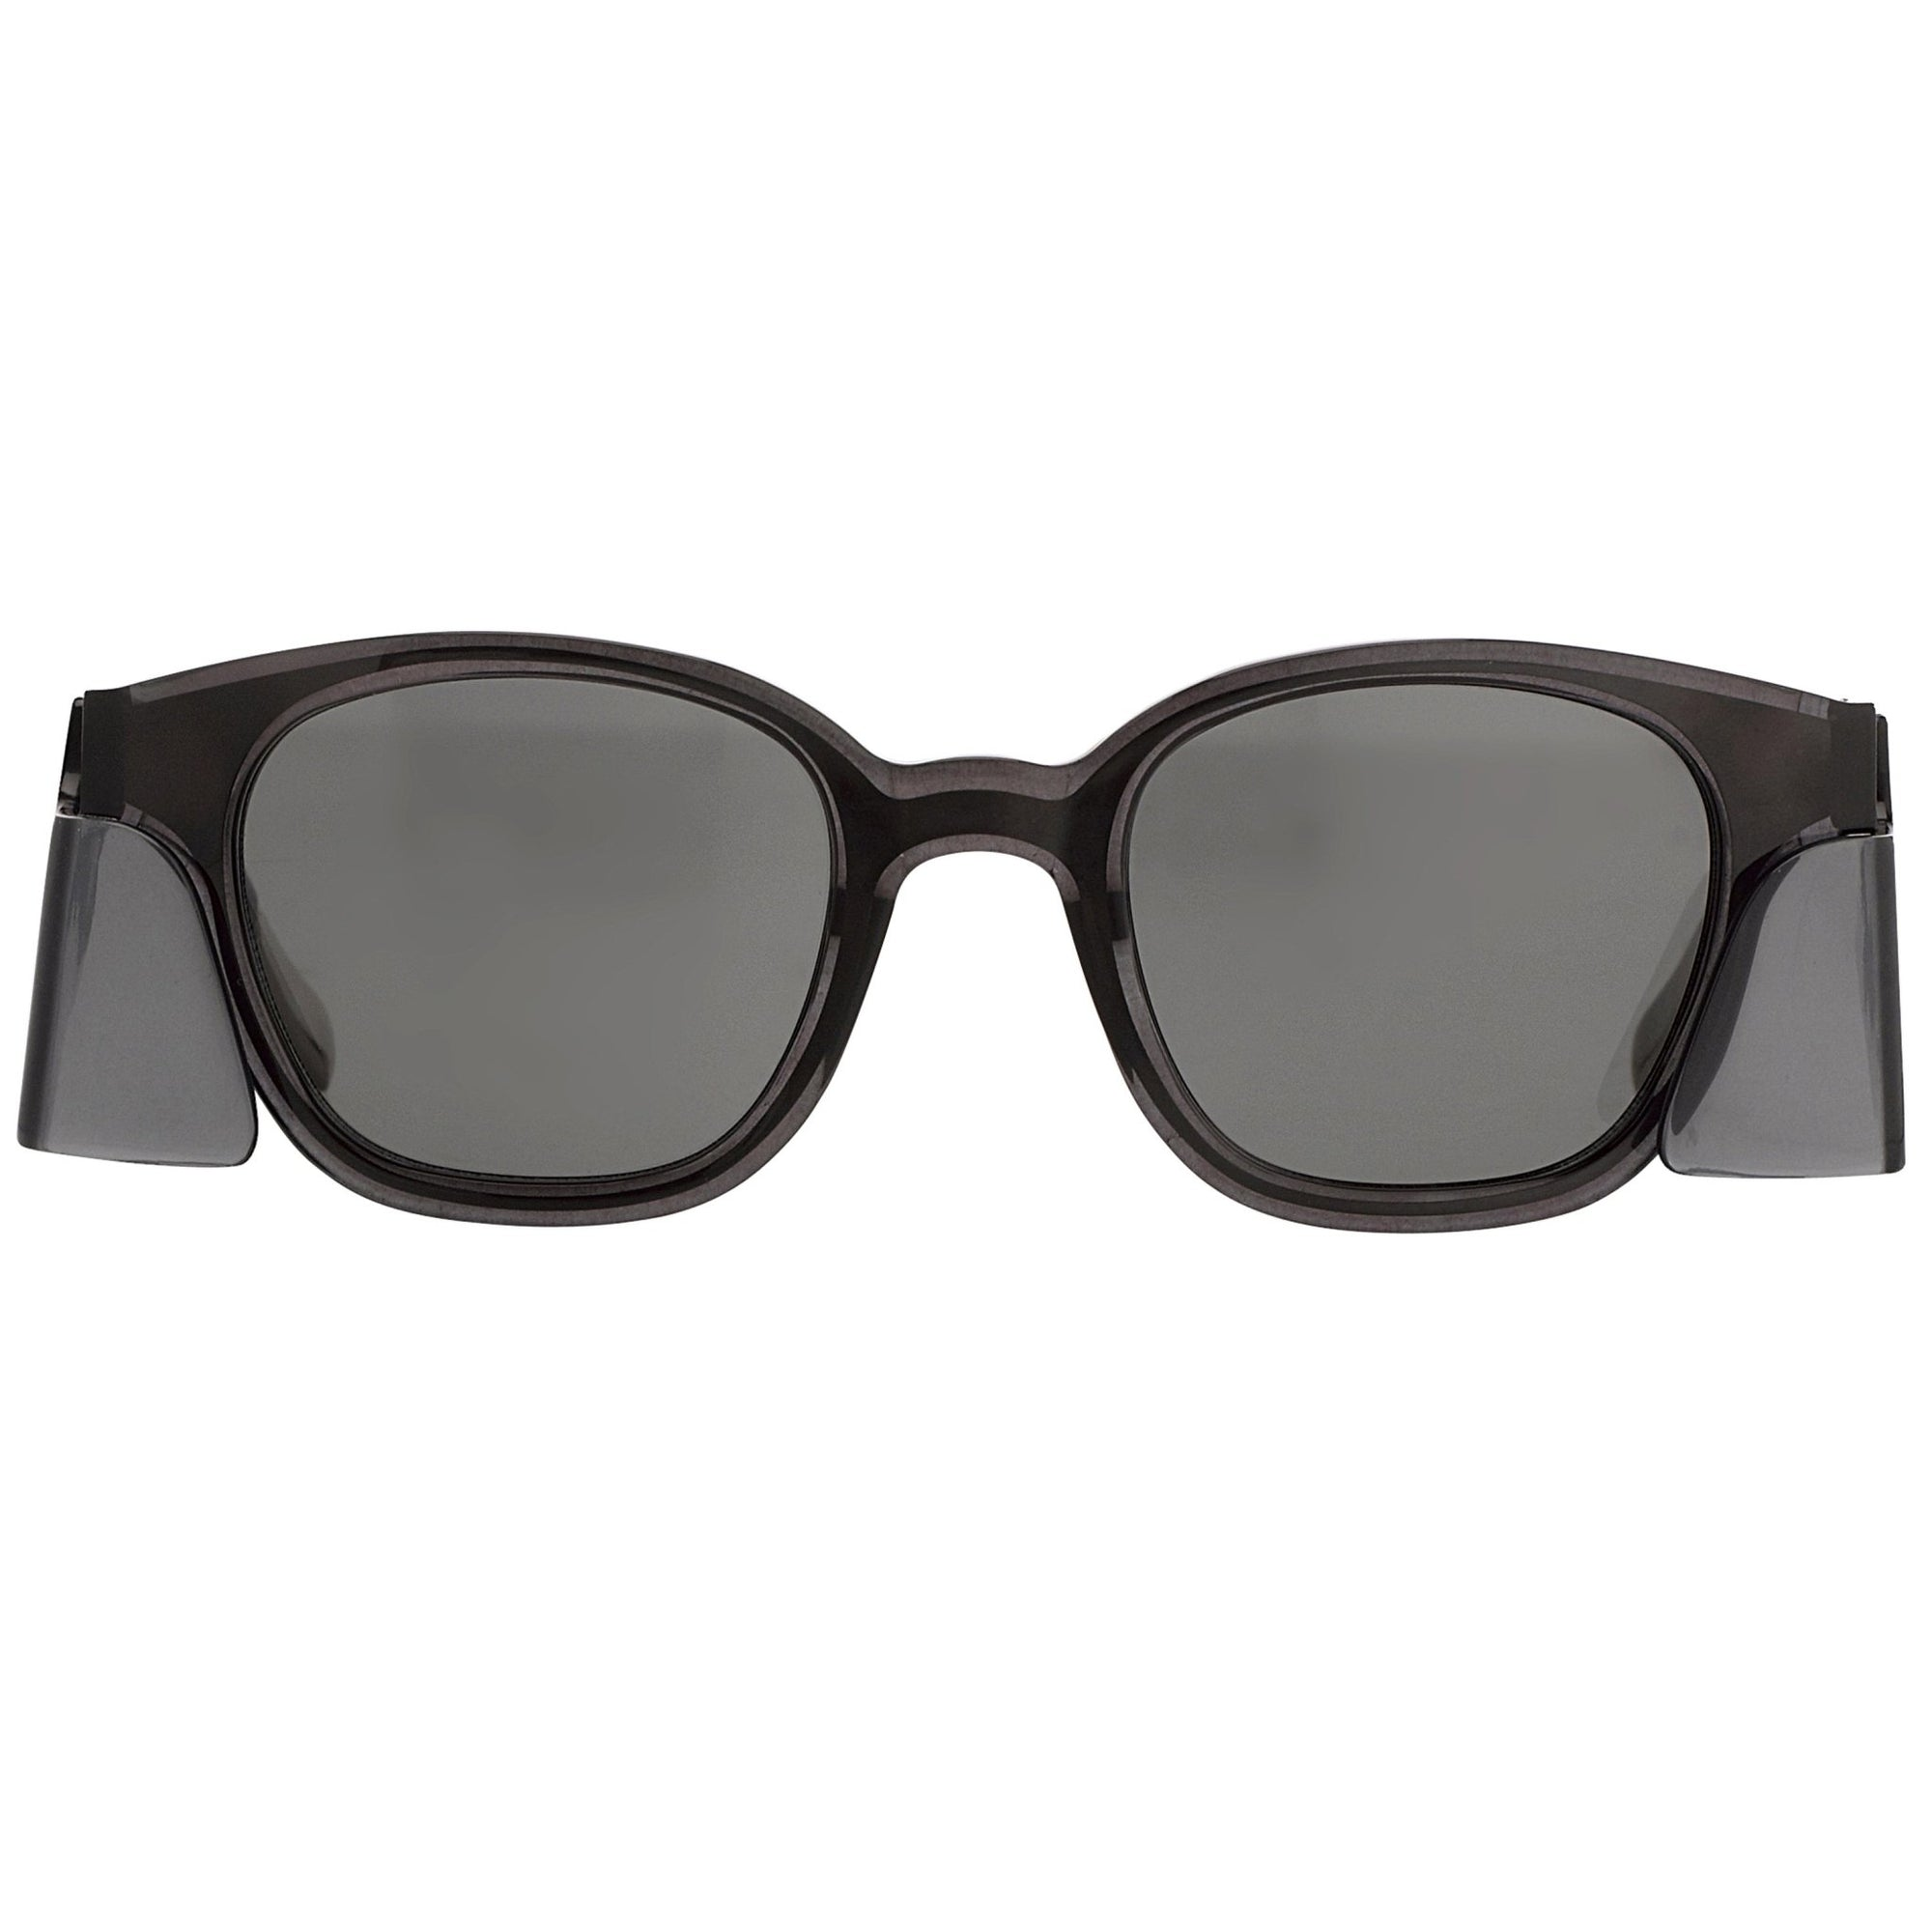 Kris Van Assche Unisex Sunglasses with Side Piece Oval Translucent Black and Grey Lenses Category 3 - KVA9C6SUN - Watches & Crystals